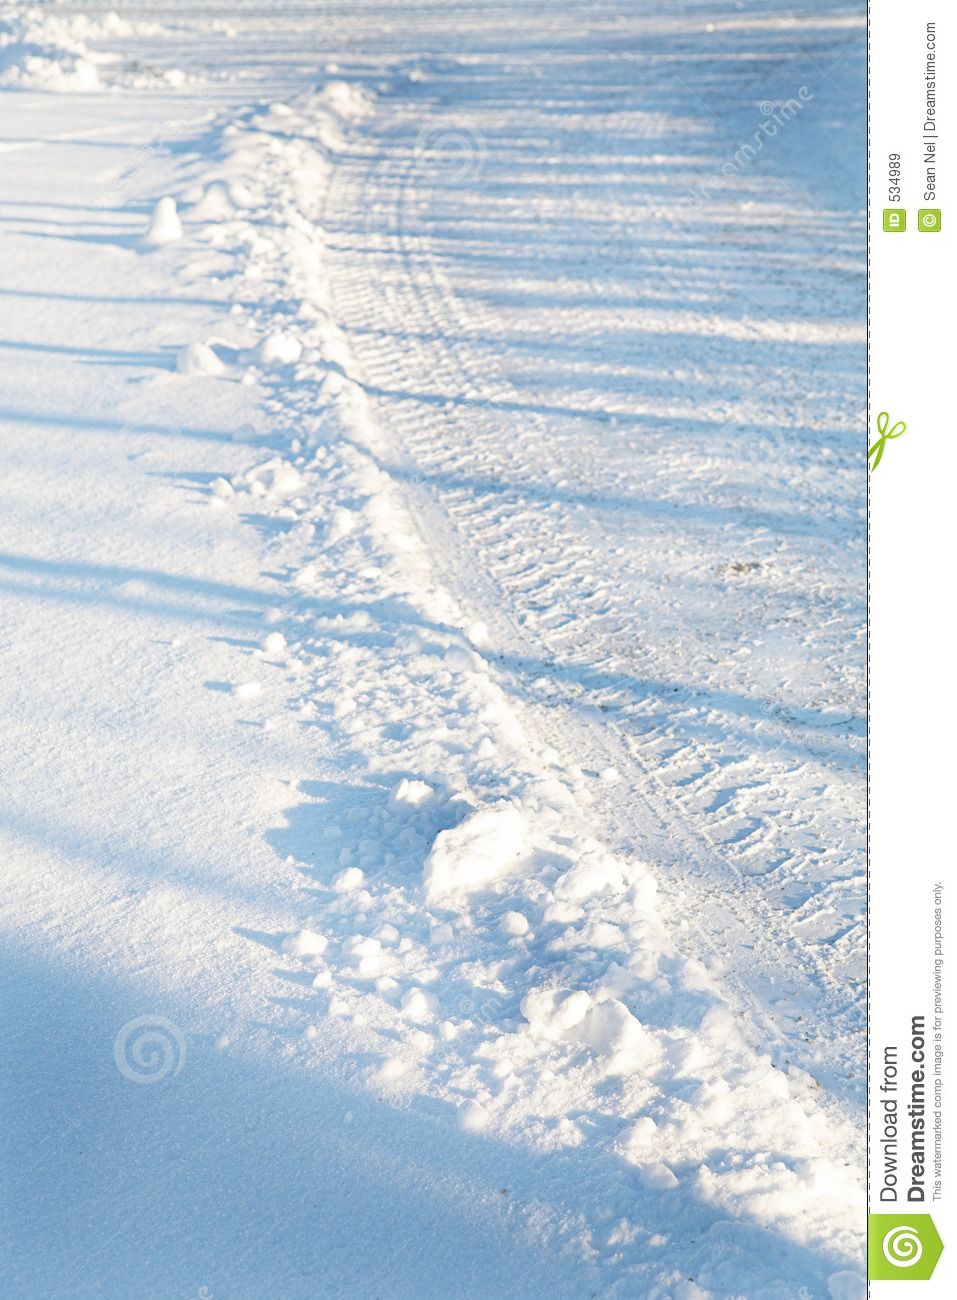 Tires Tracks in the Snow